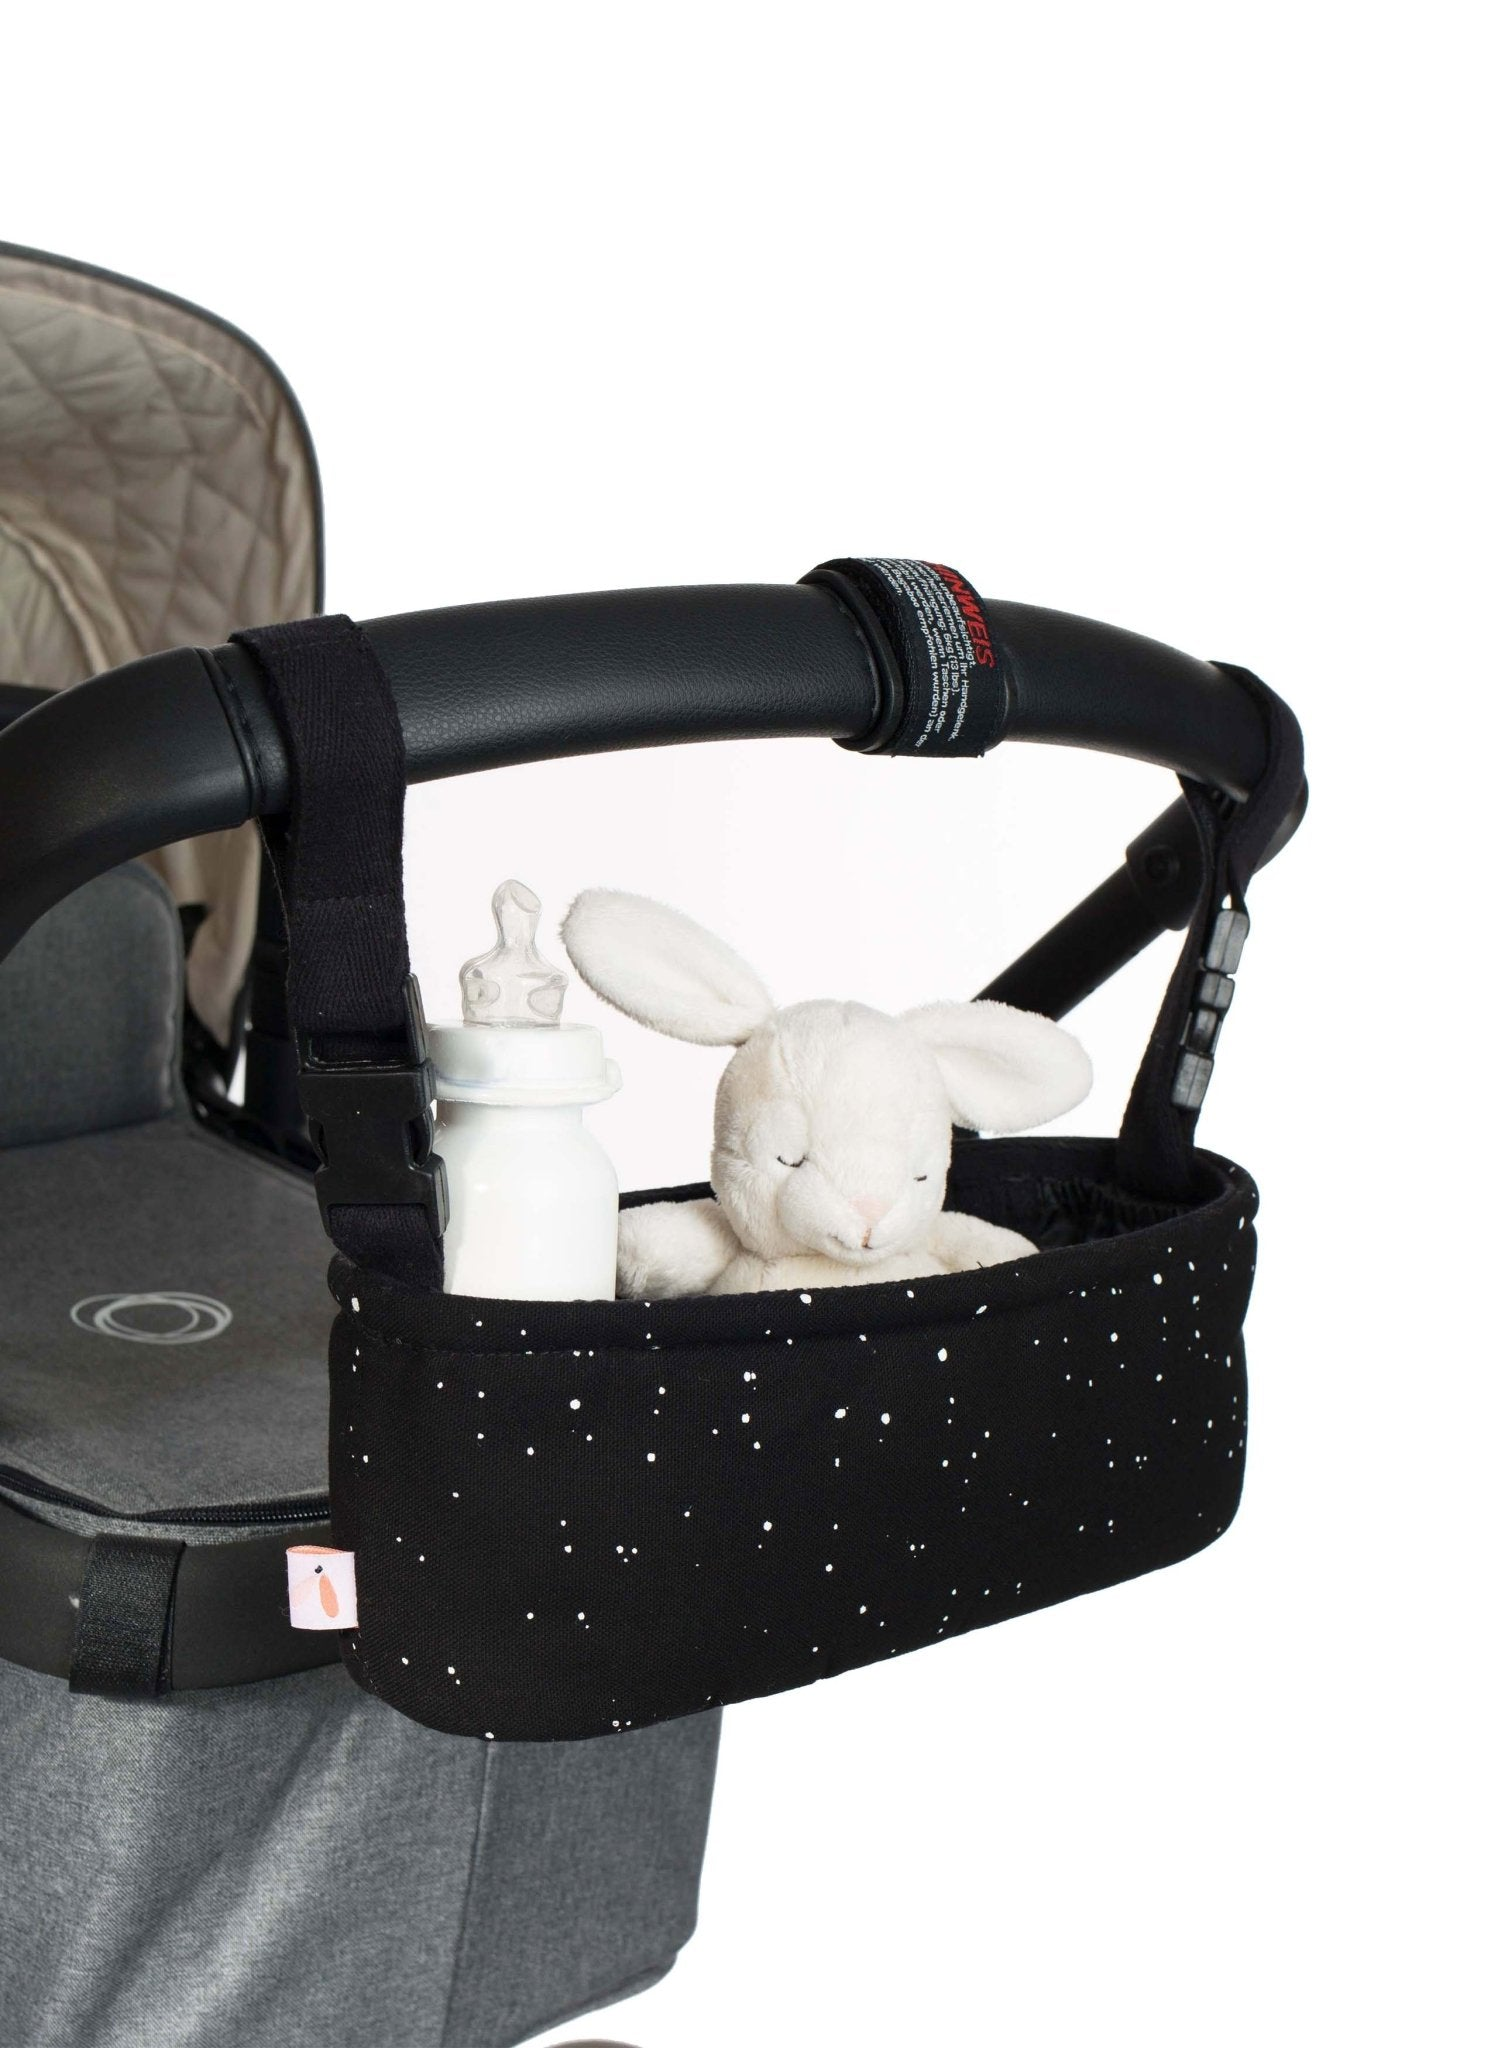 Stroller Organizer - Endless Sky - Mums and Bumps